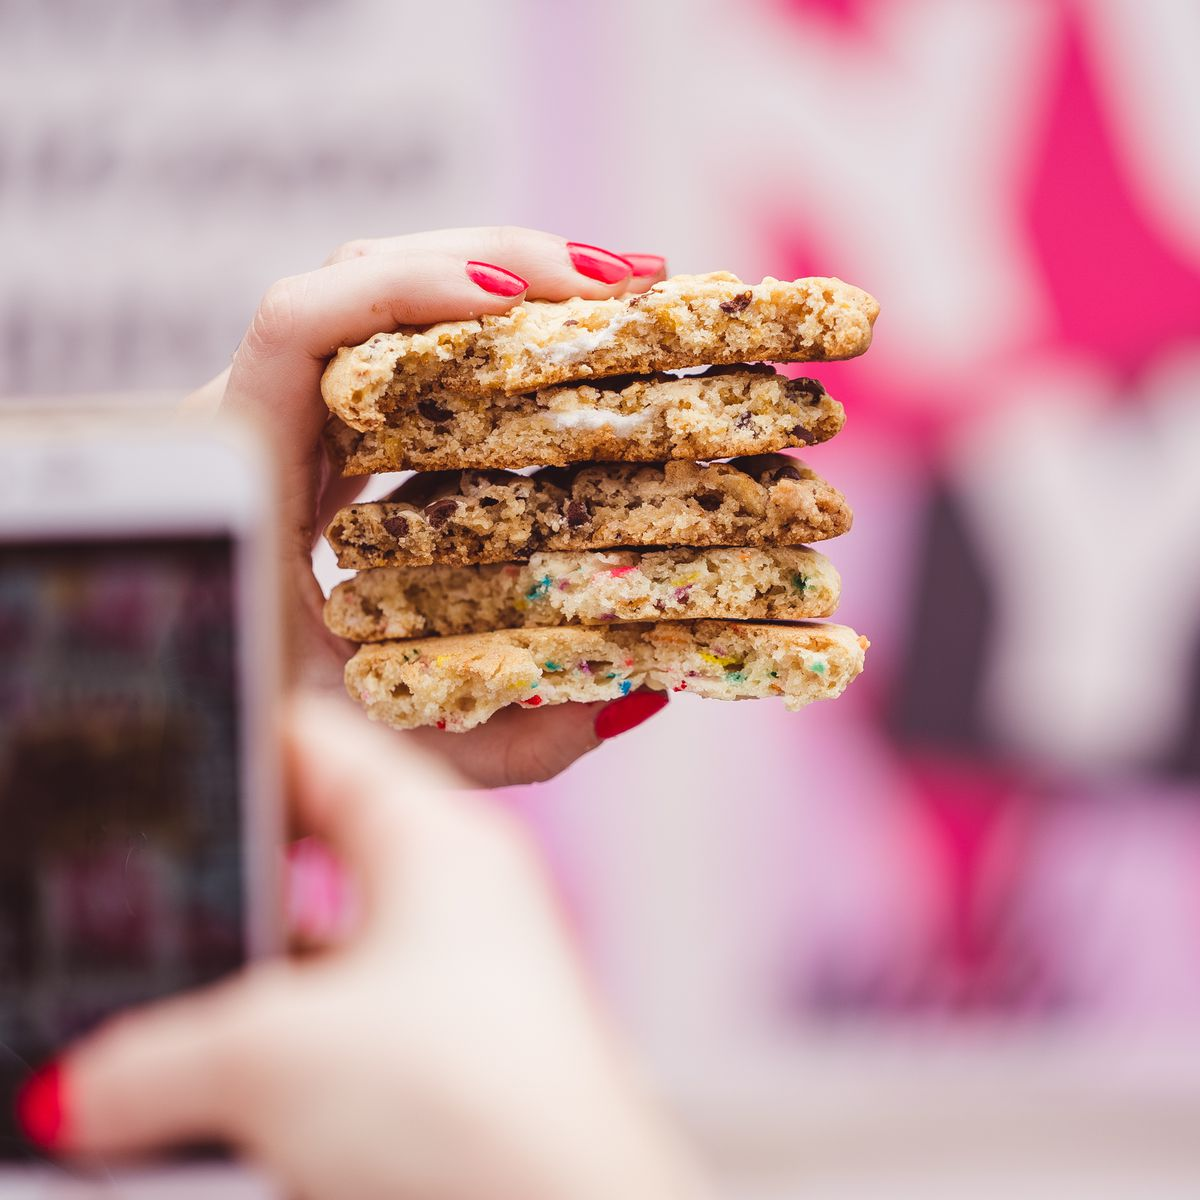 A photo of a photo being taken of a stack of cookies